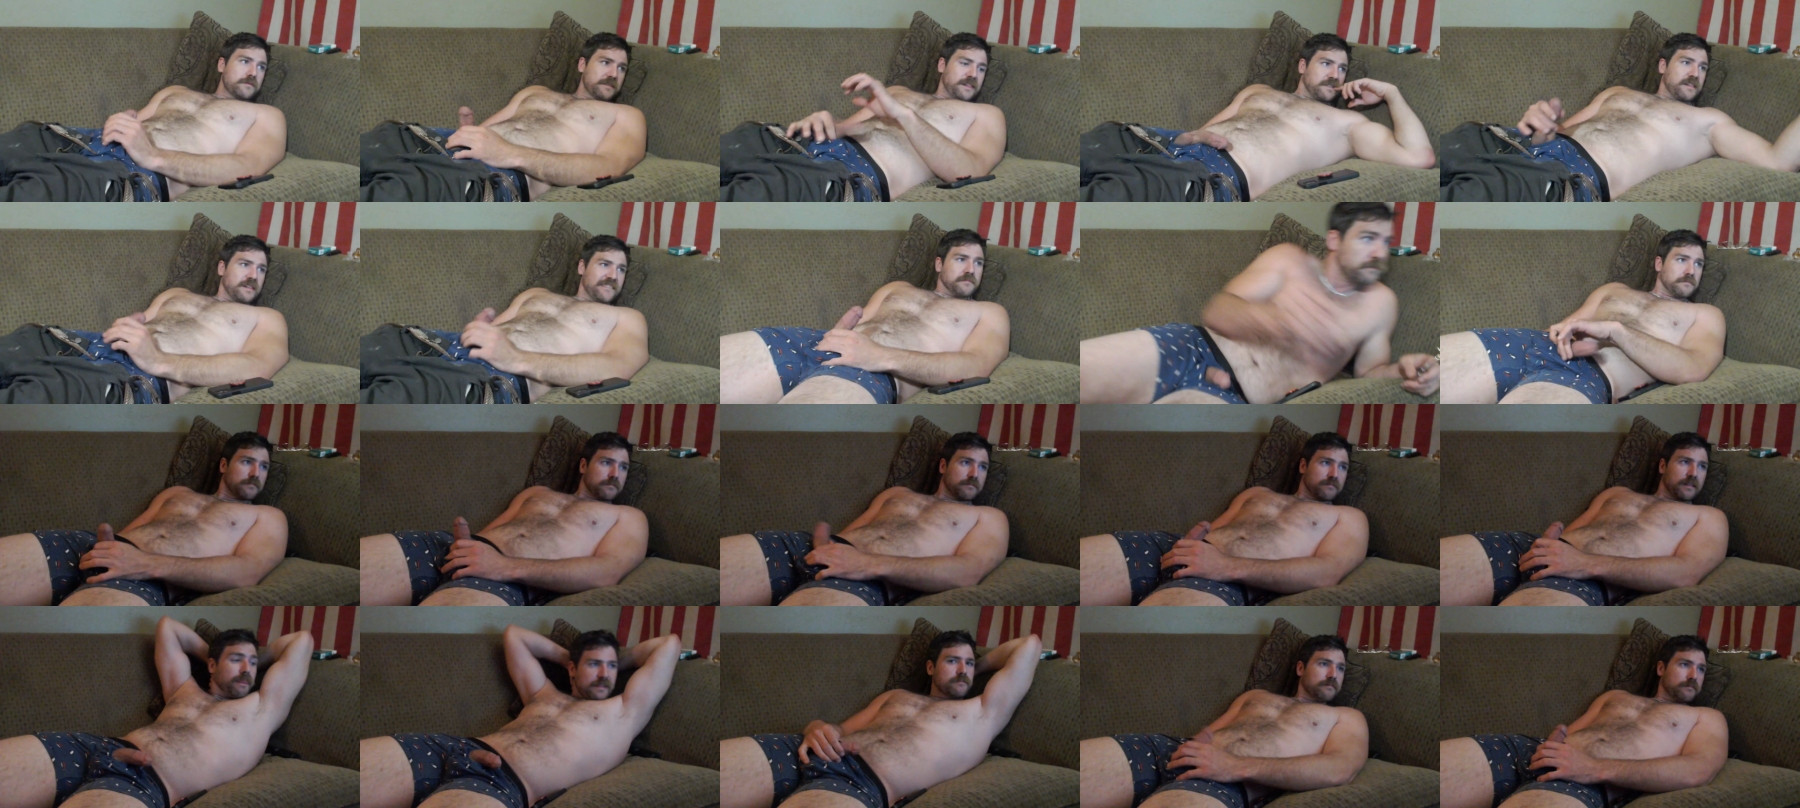 Thekdawg69 Chaturbate 07-05-2021 video outfits